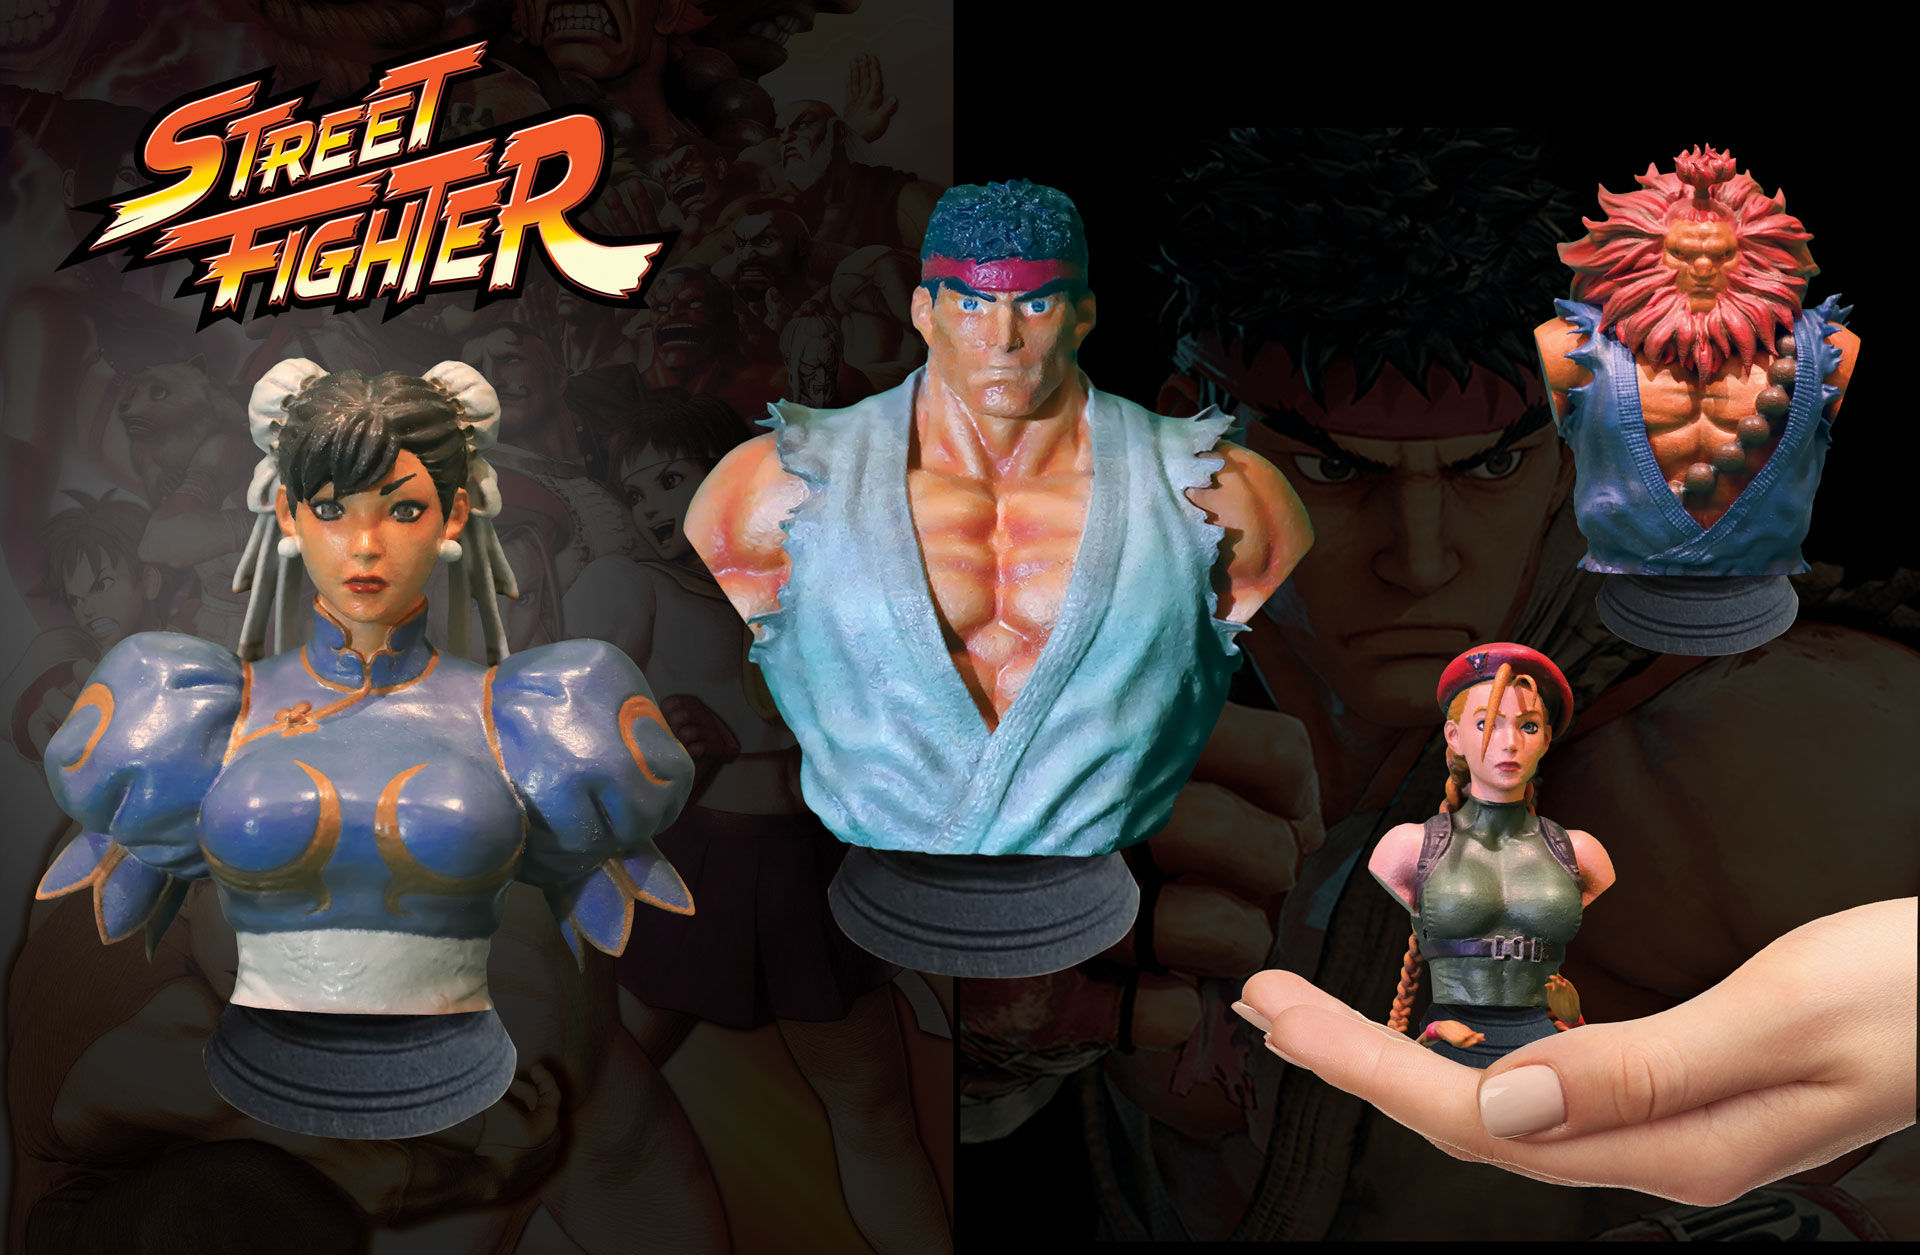 New 'Street Fighter' Collectibles K.O. the Competition